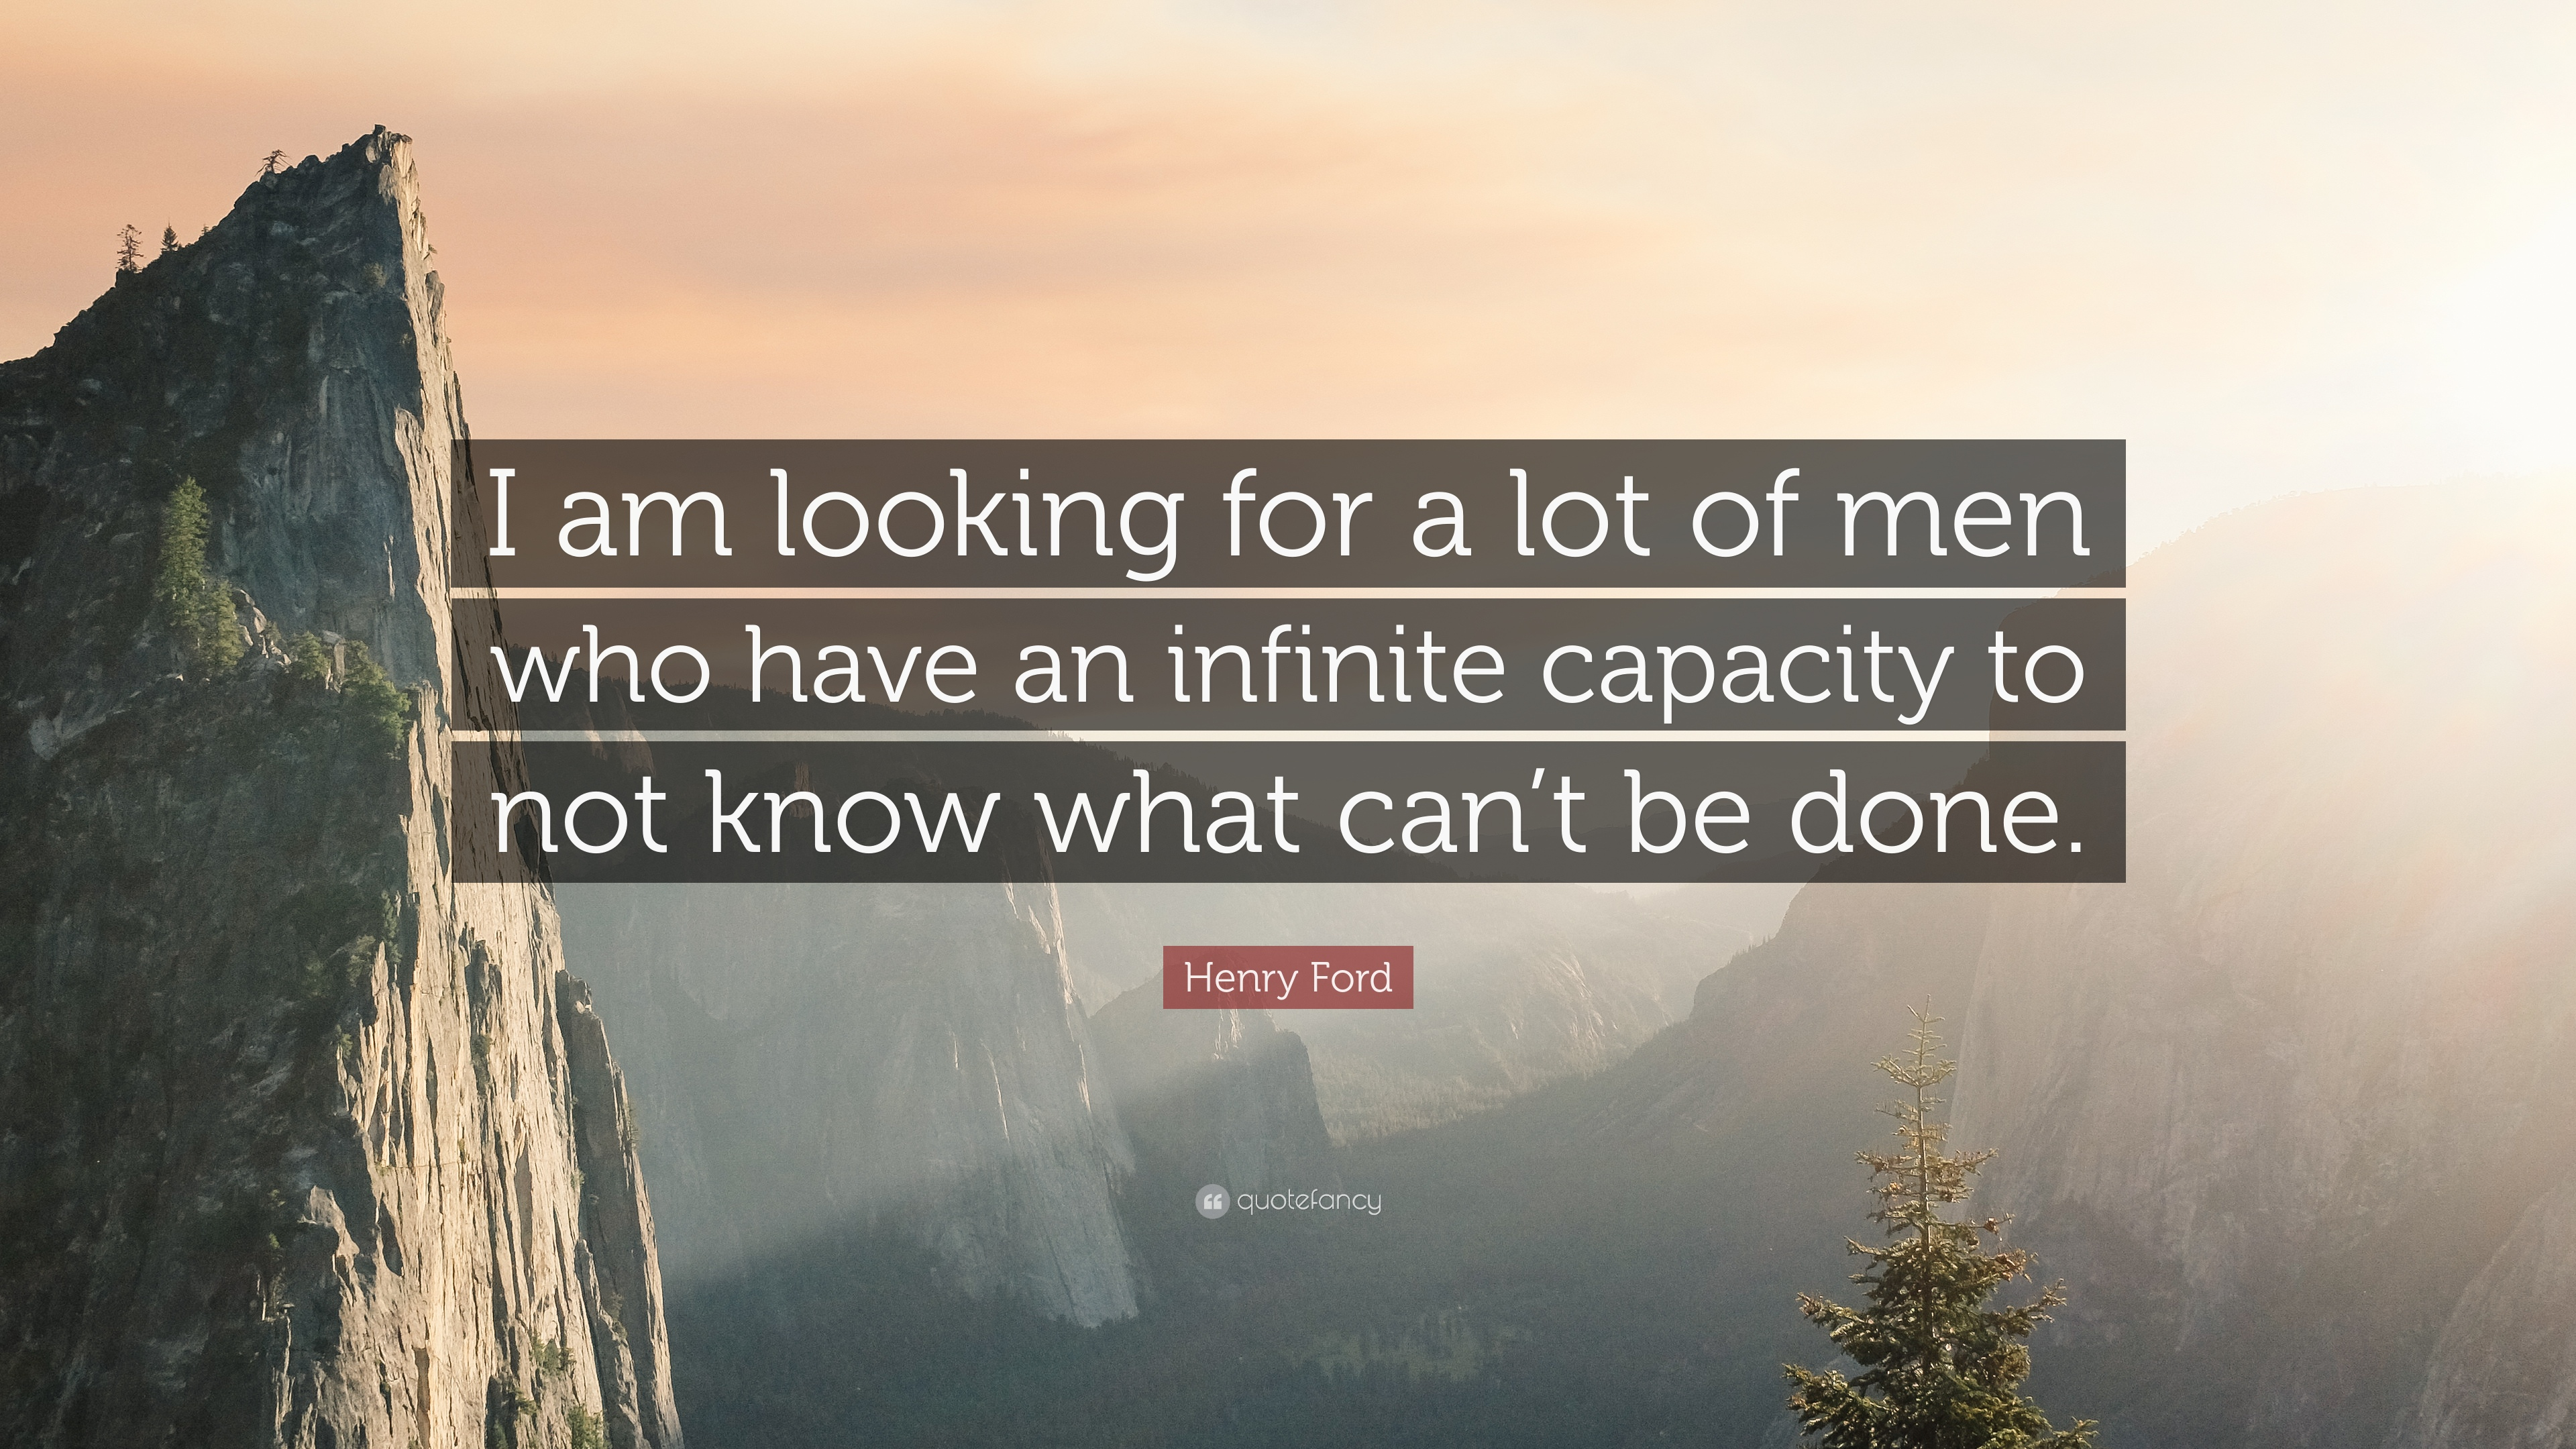 Henry Ford Quote I Am Looking For A Lot Of Men Who Have An Infinite Capacity To Not Know What